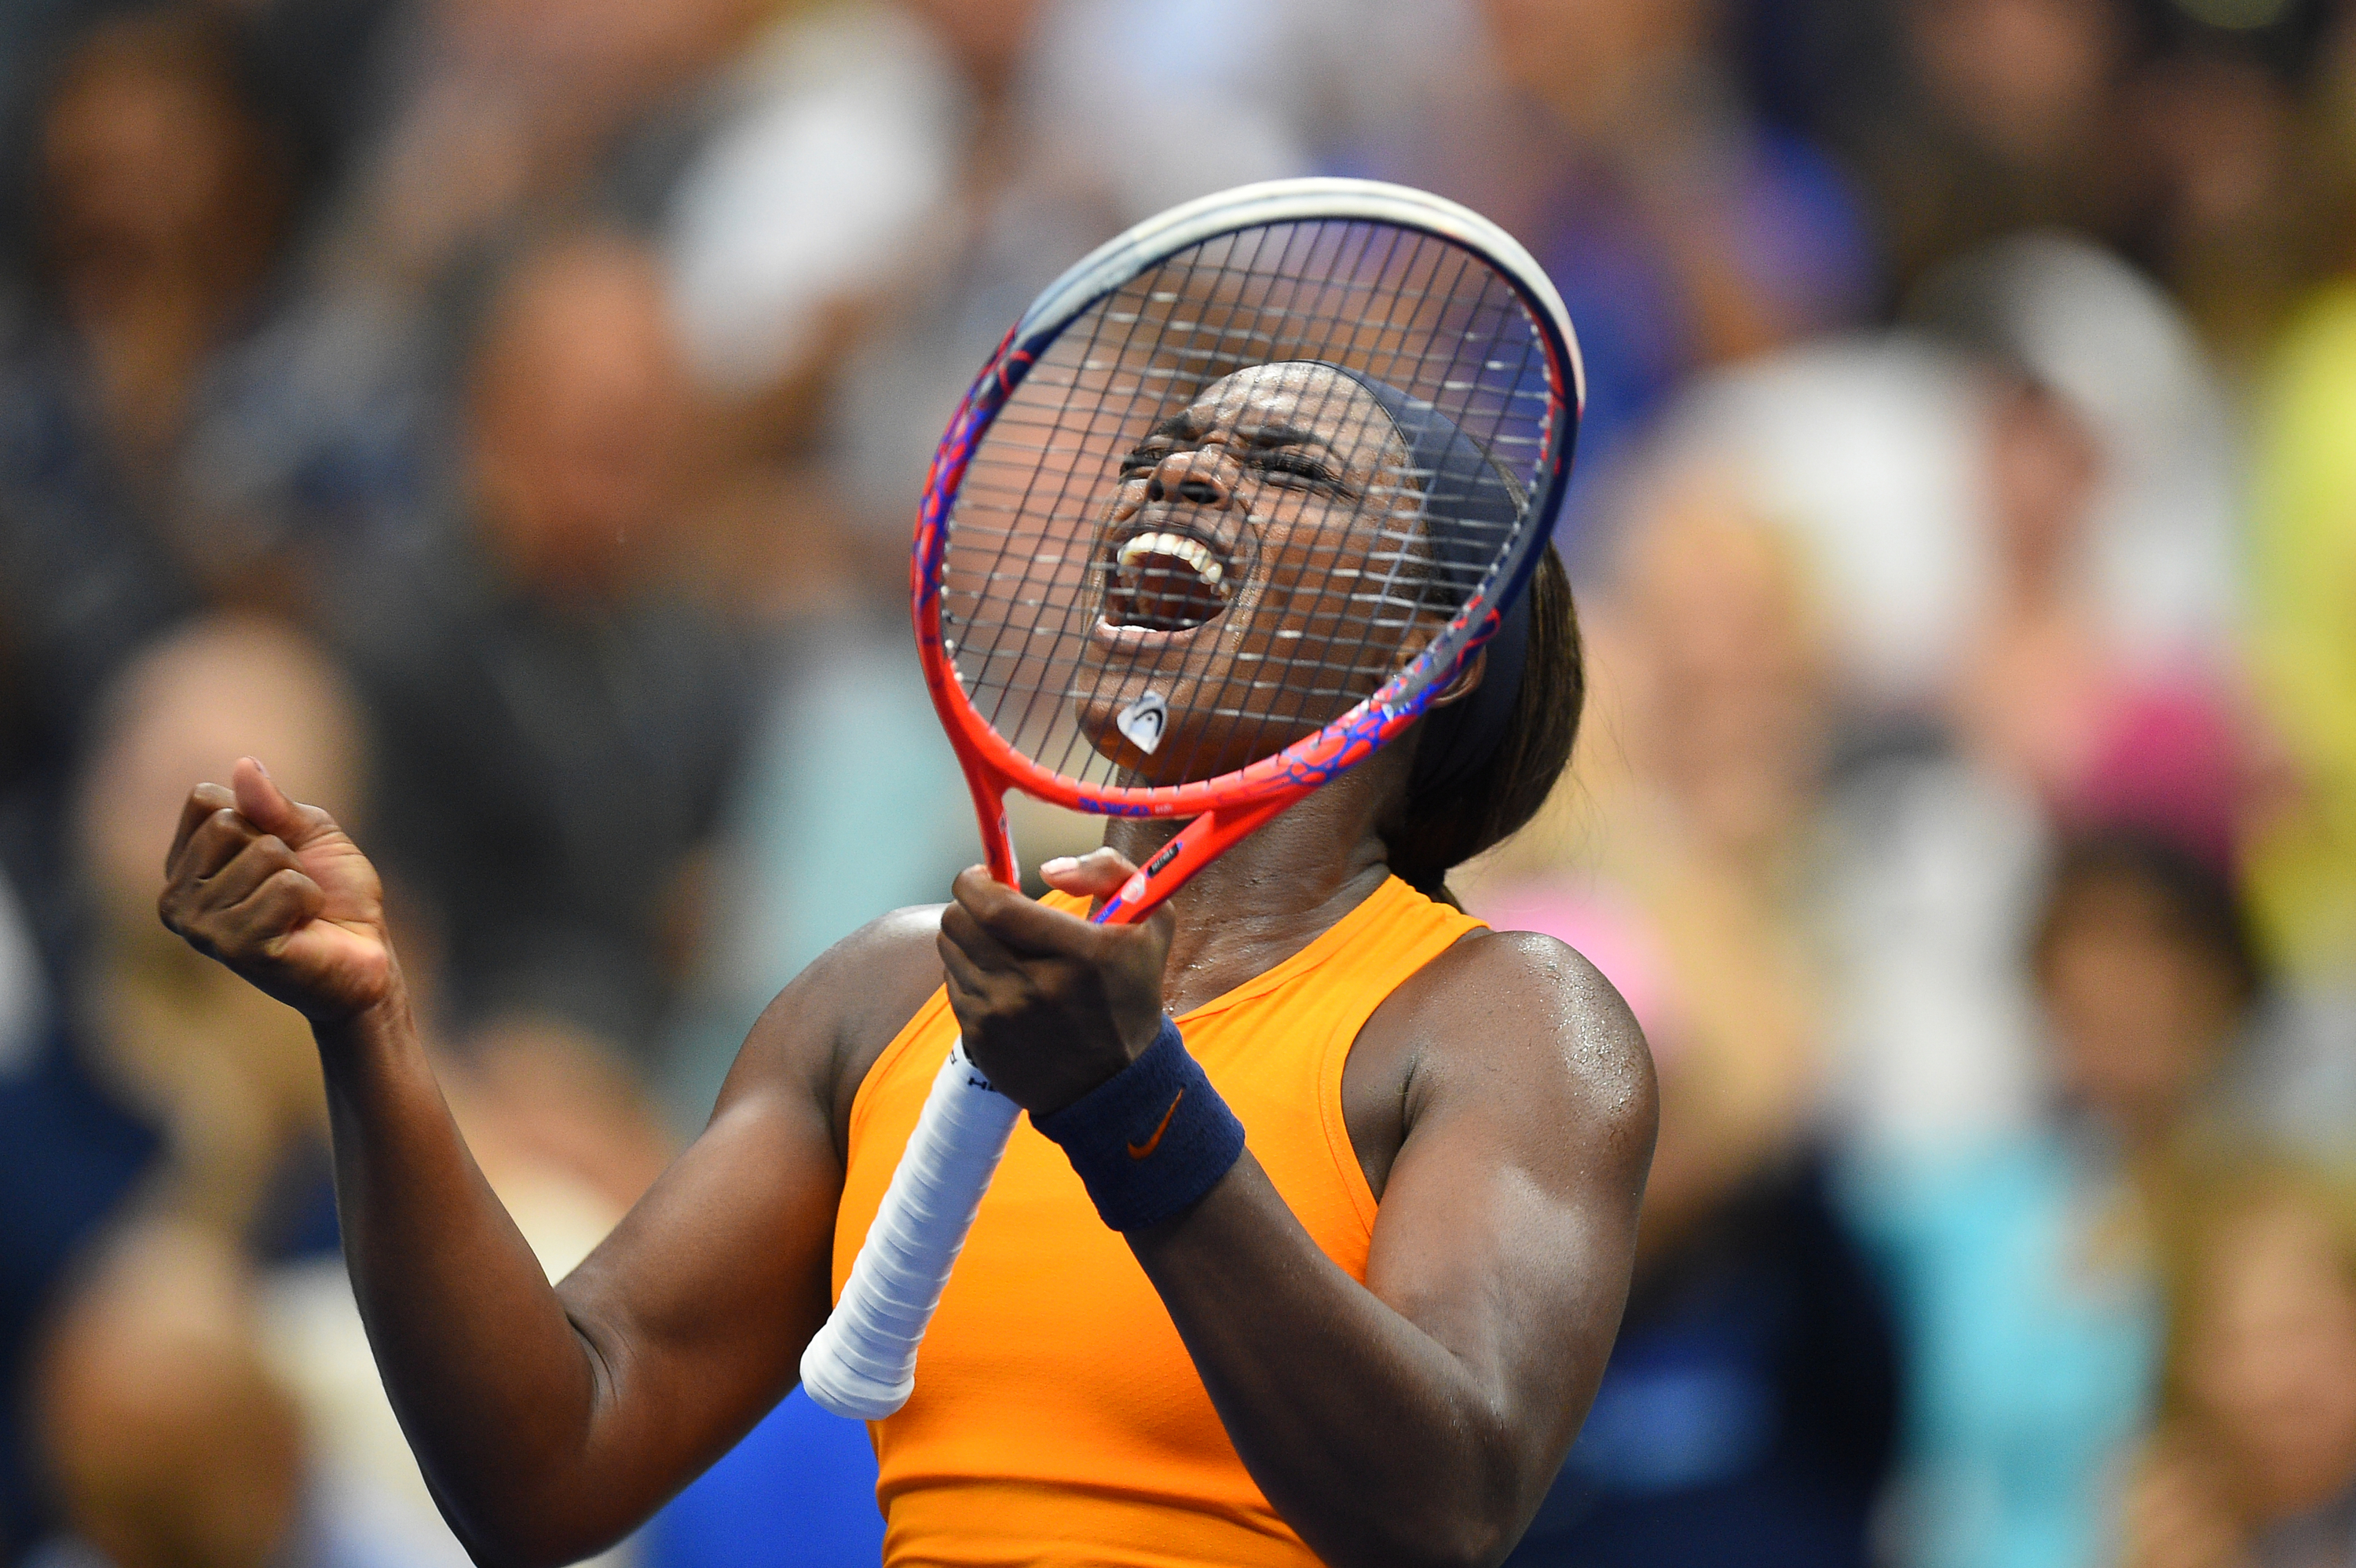 Sloane Stephens shouting during the 2018 US Open